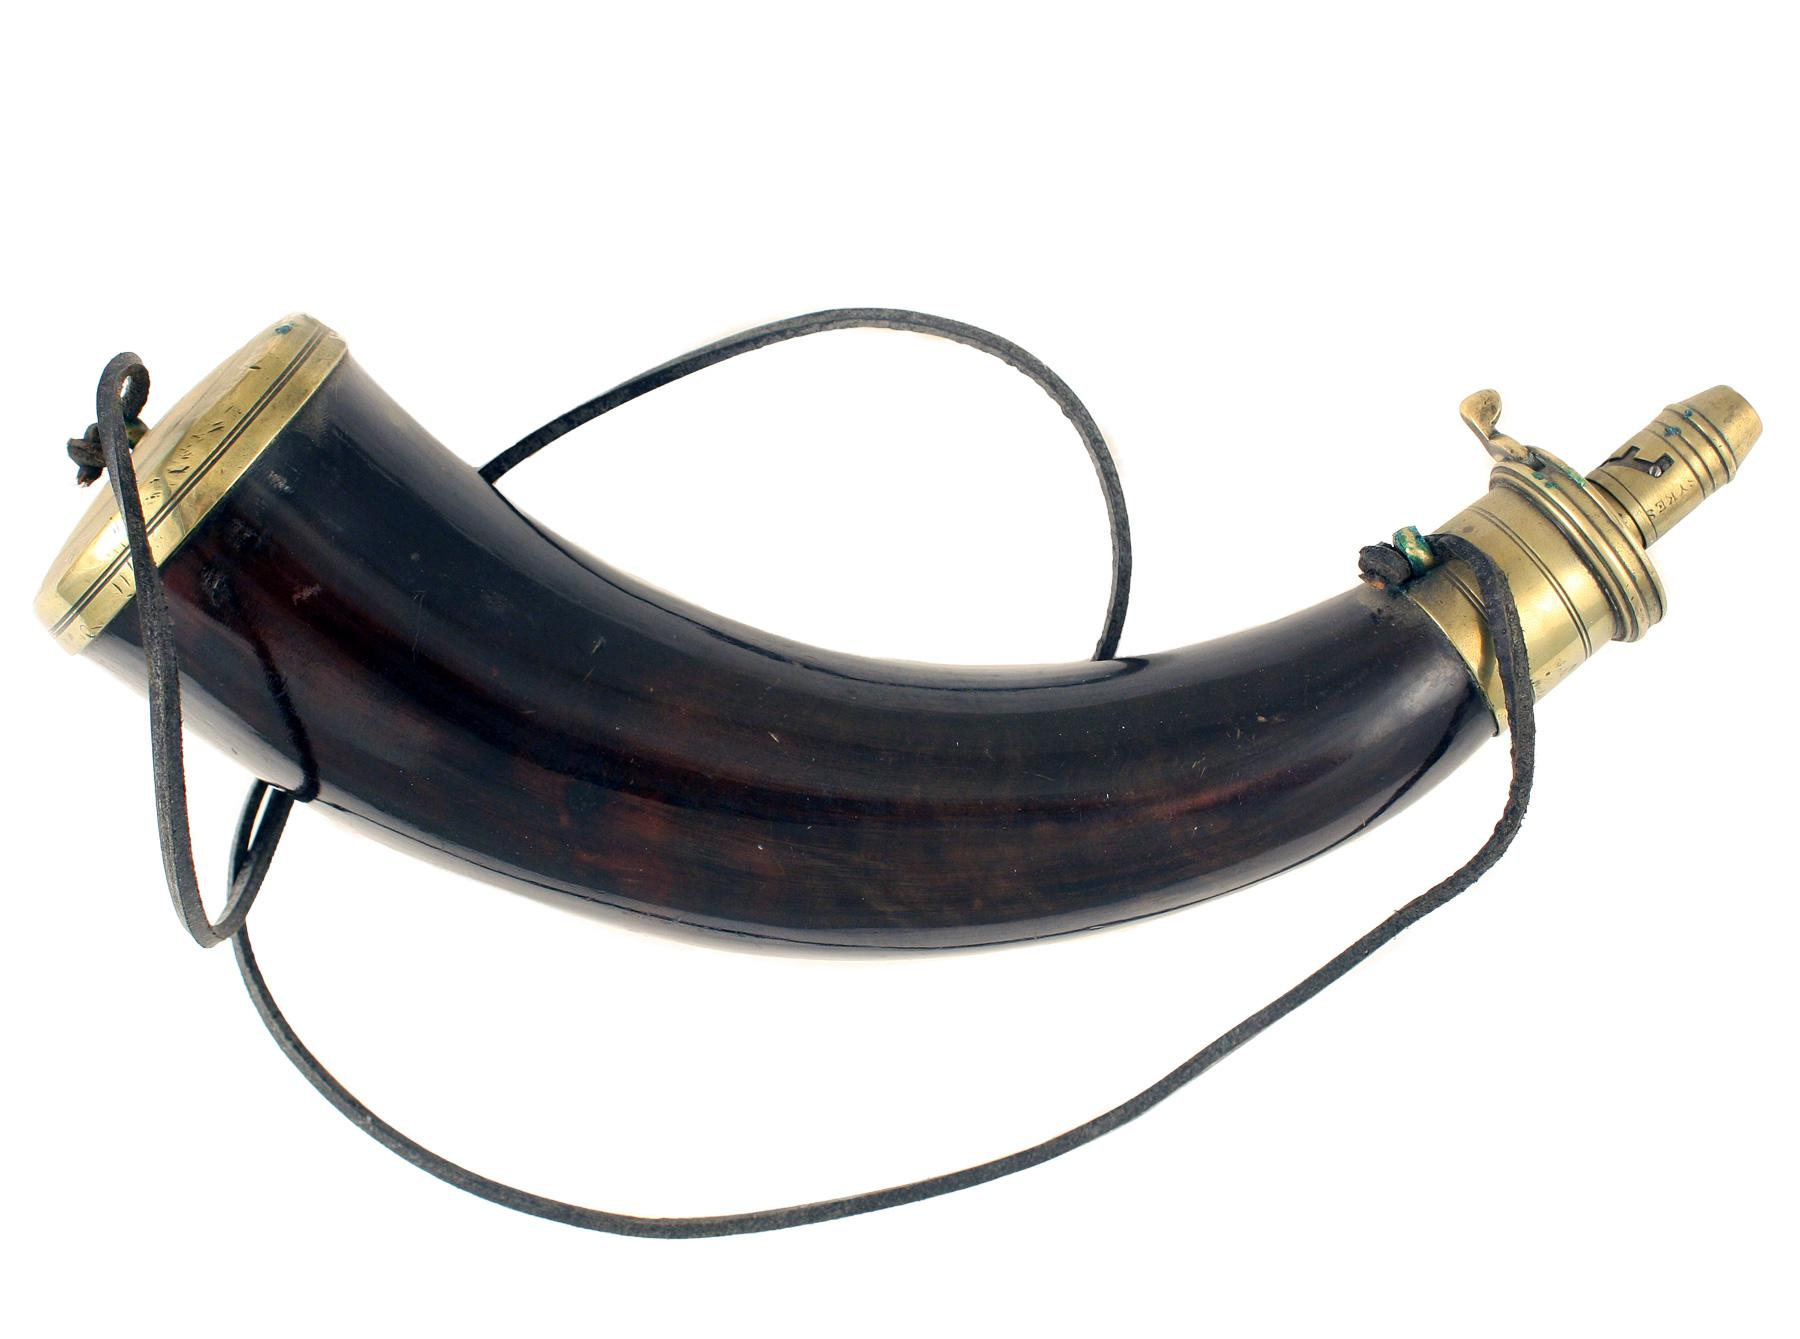 A 'Sykes Patent' Powder Horn